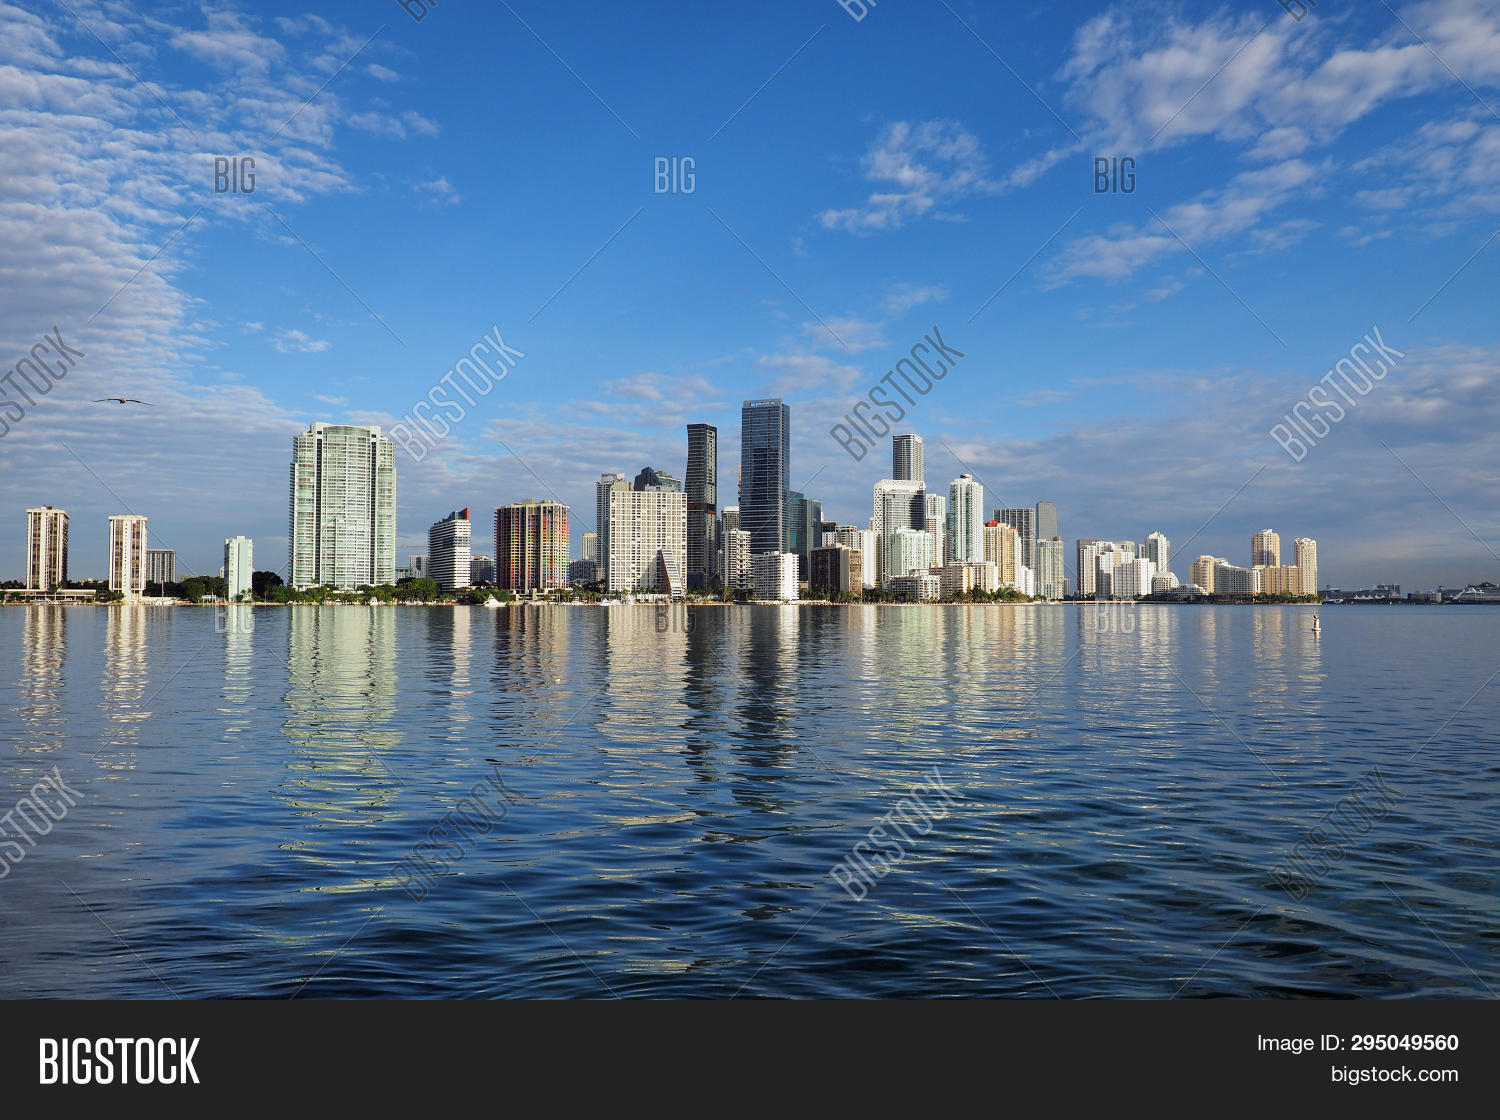 Miami, Florida 11-24-2018 The Skyline Of The City Of Miami, Florida, Reflected In The Calm Water Of